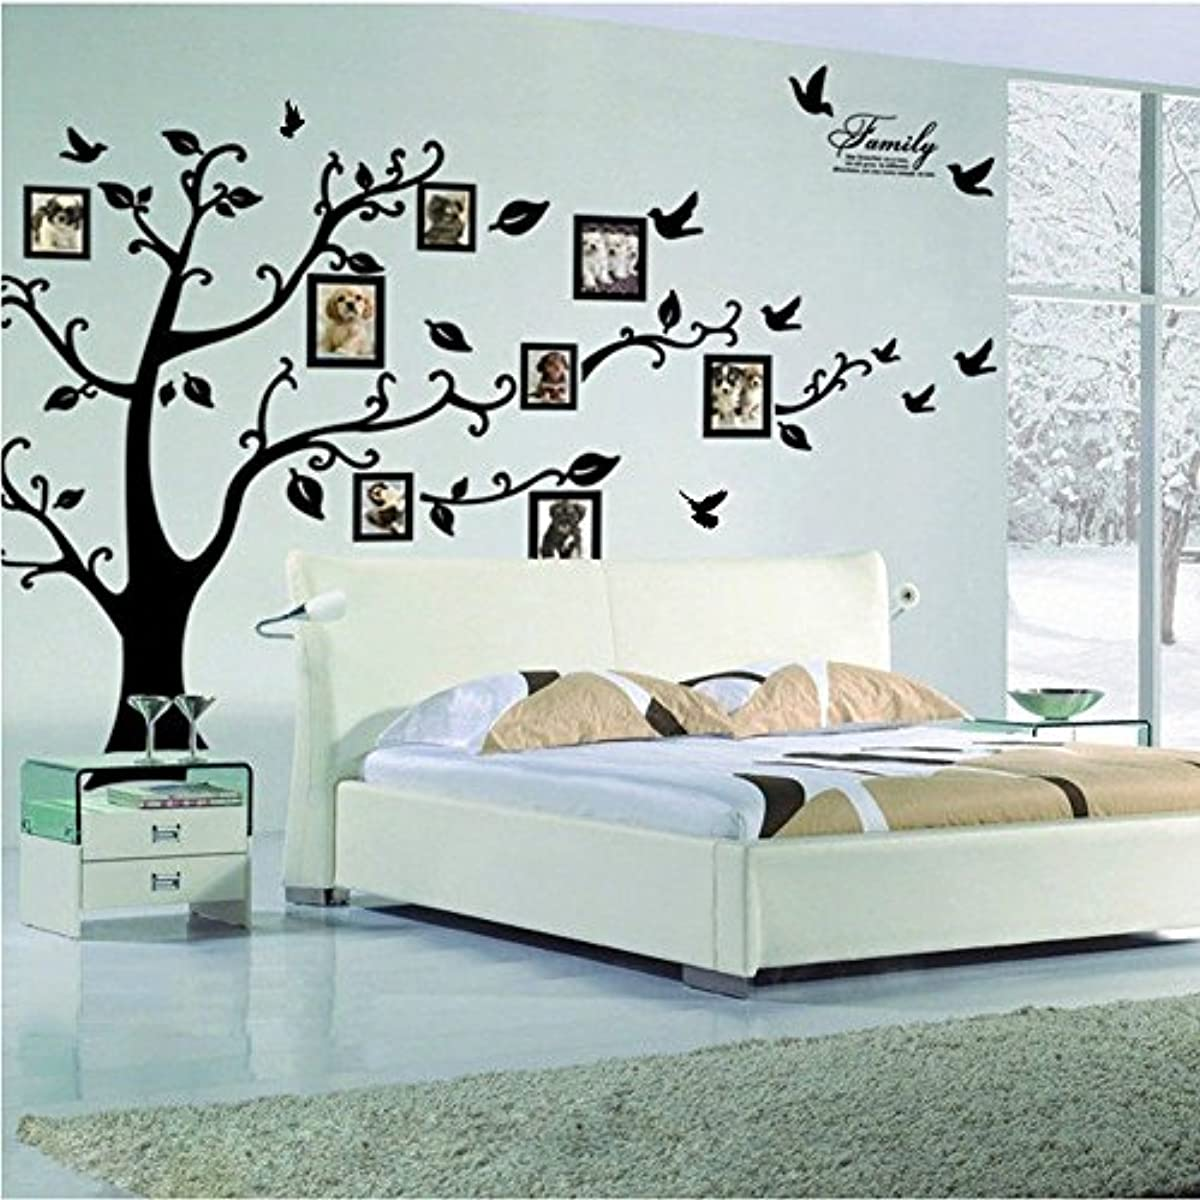 Family Tree Wall Decal Stickers Photo Frame Set Picture